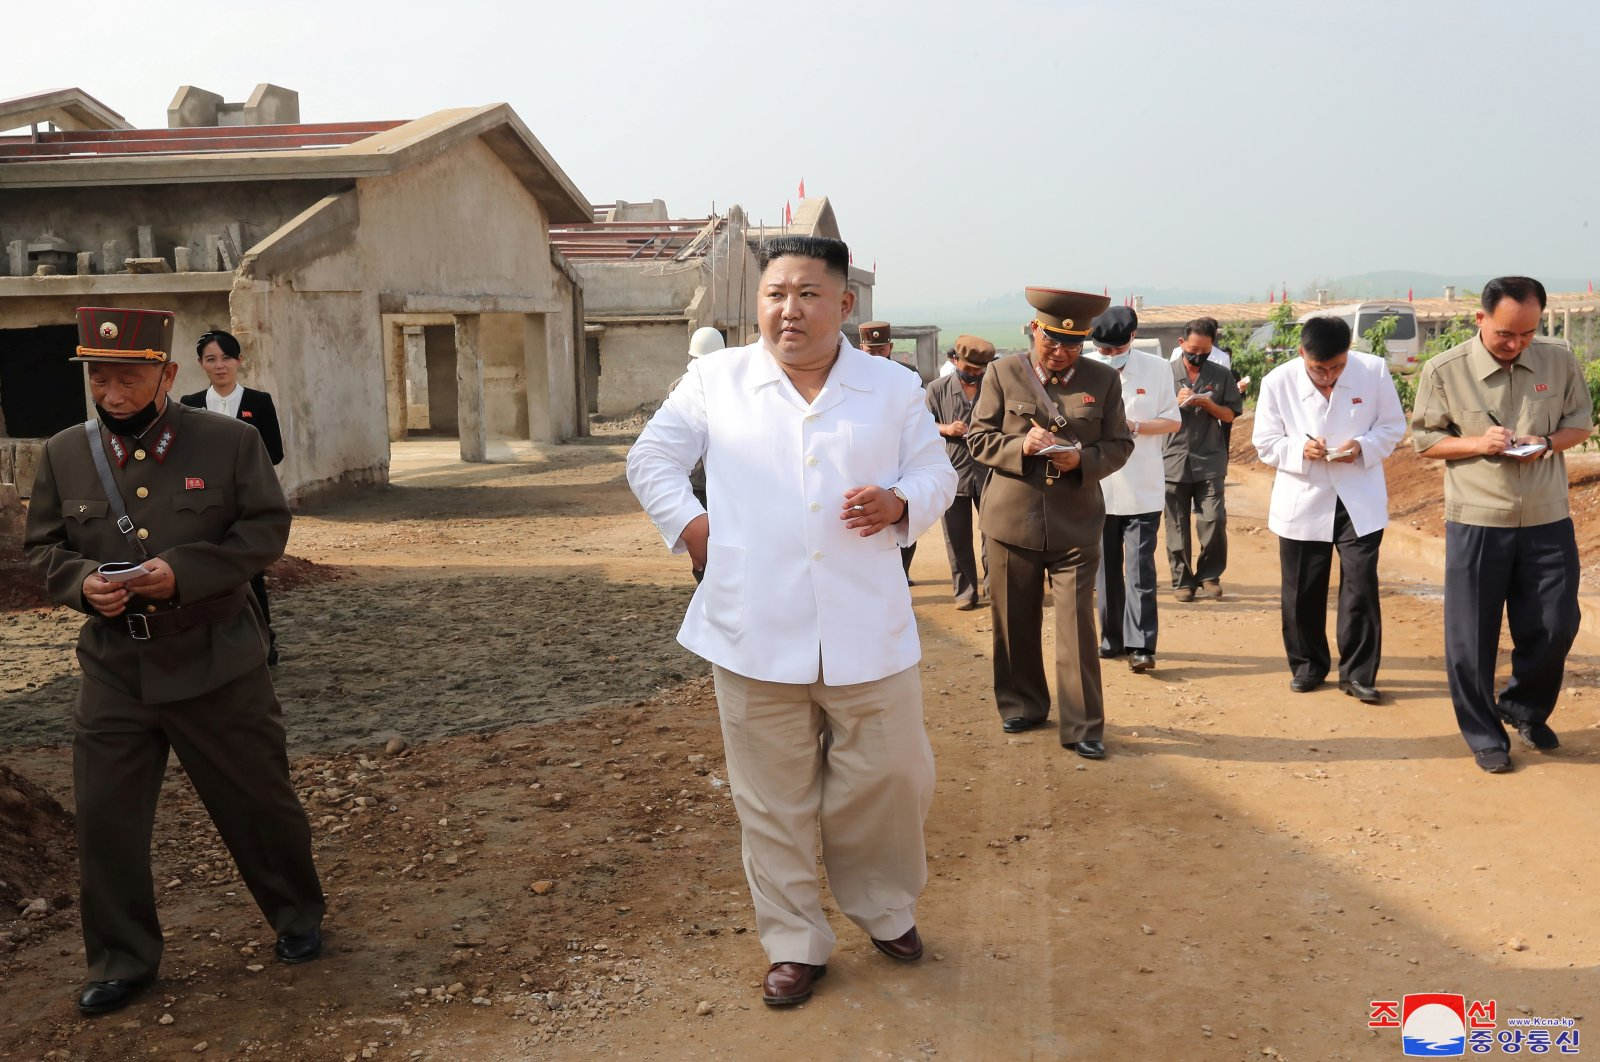 Supreme Leader Kim Jong Un gives field guidance to Kwangchon Chicken Farm under construction in this undated photo released on July 19, 2020, by North Korean Central News Agency (KCNA) in Pyongyang. (KCNA Photo via Reuters)